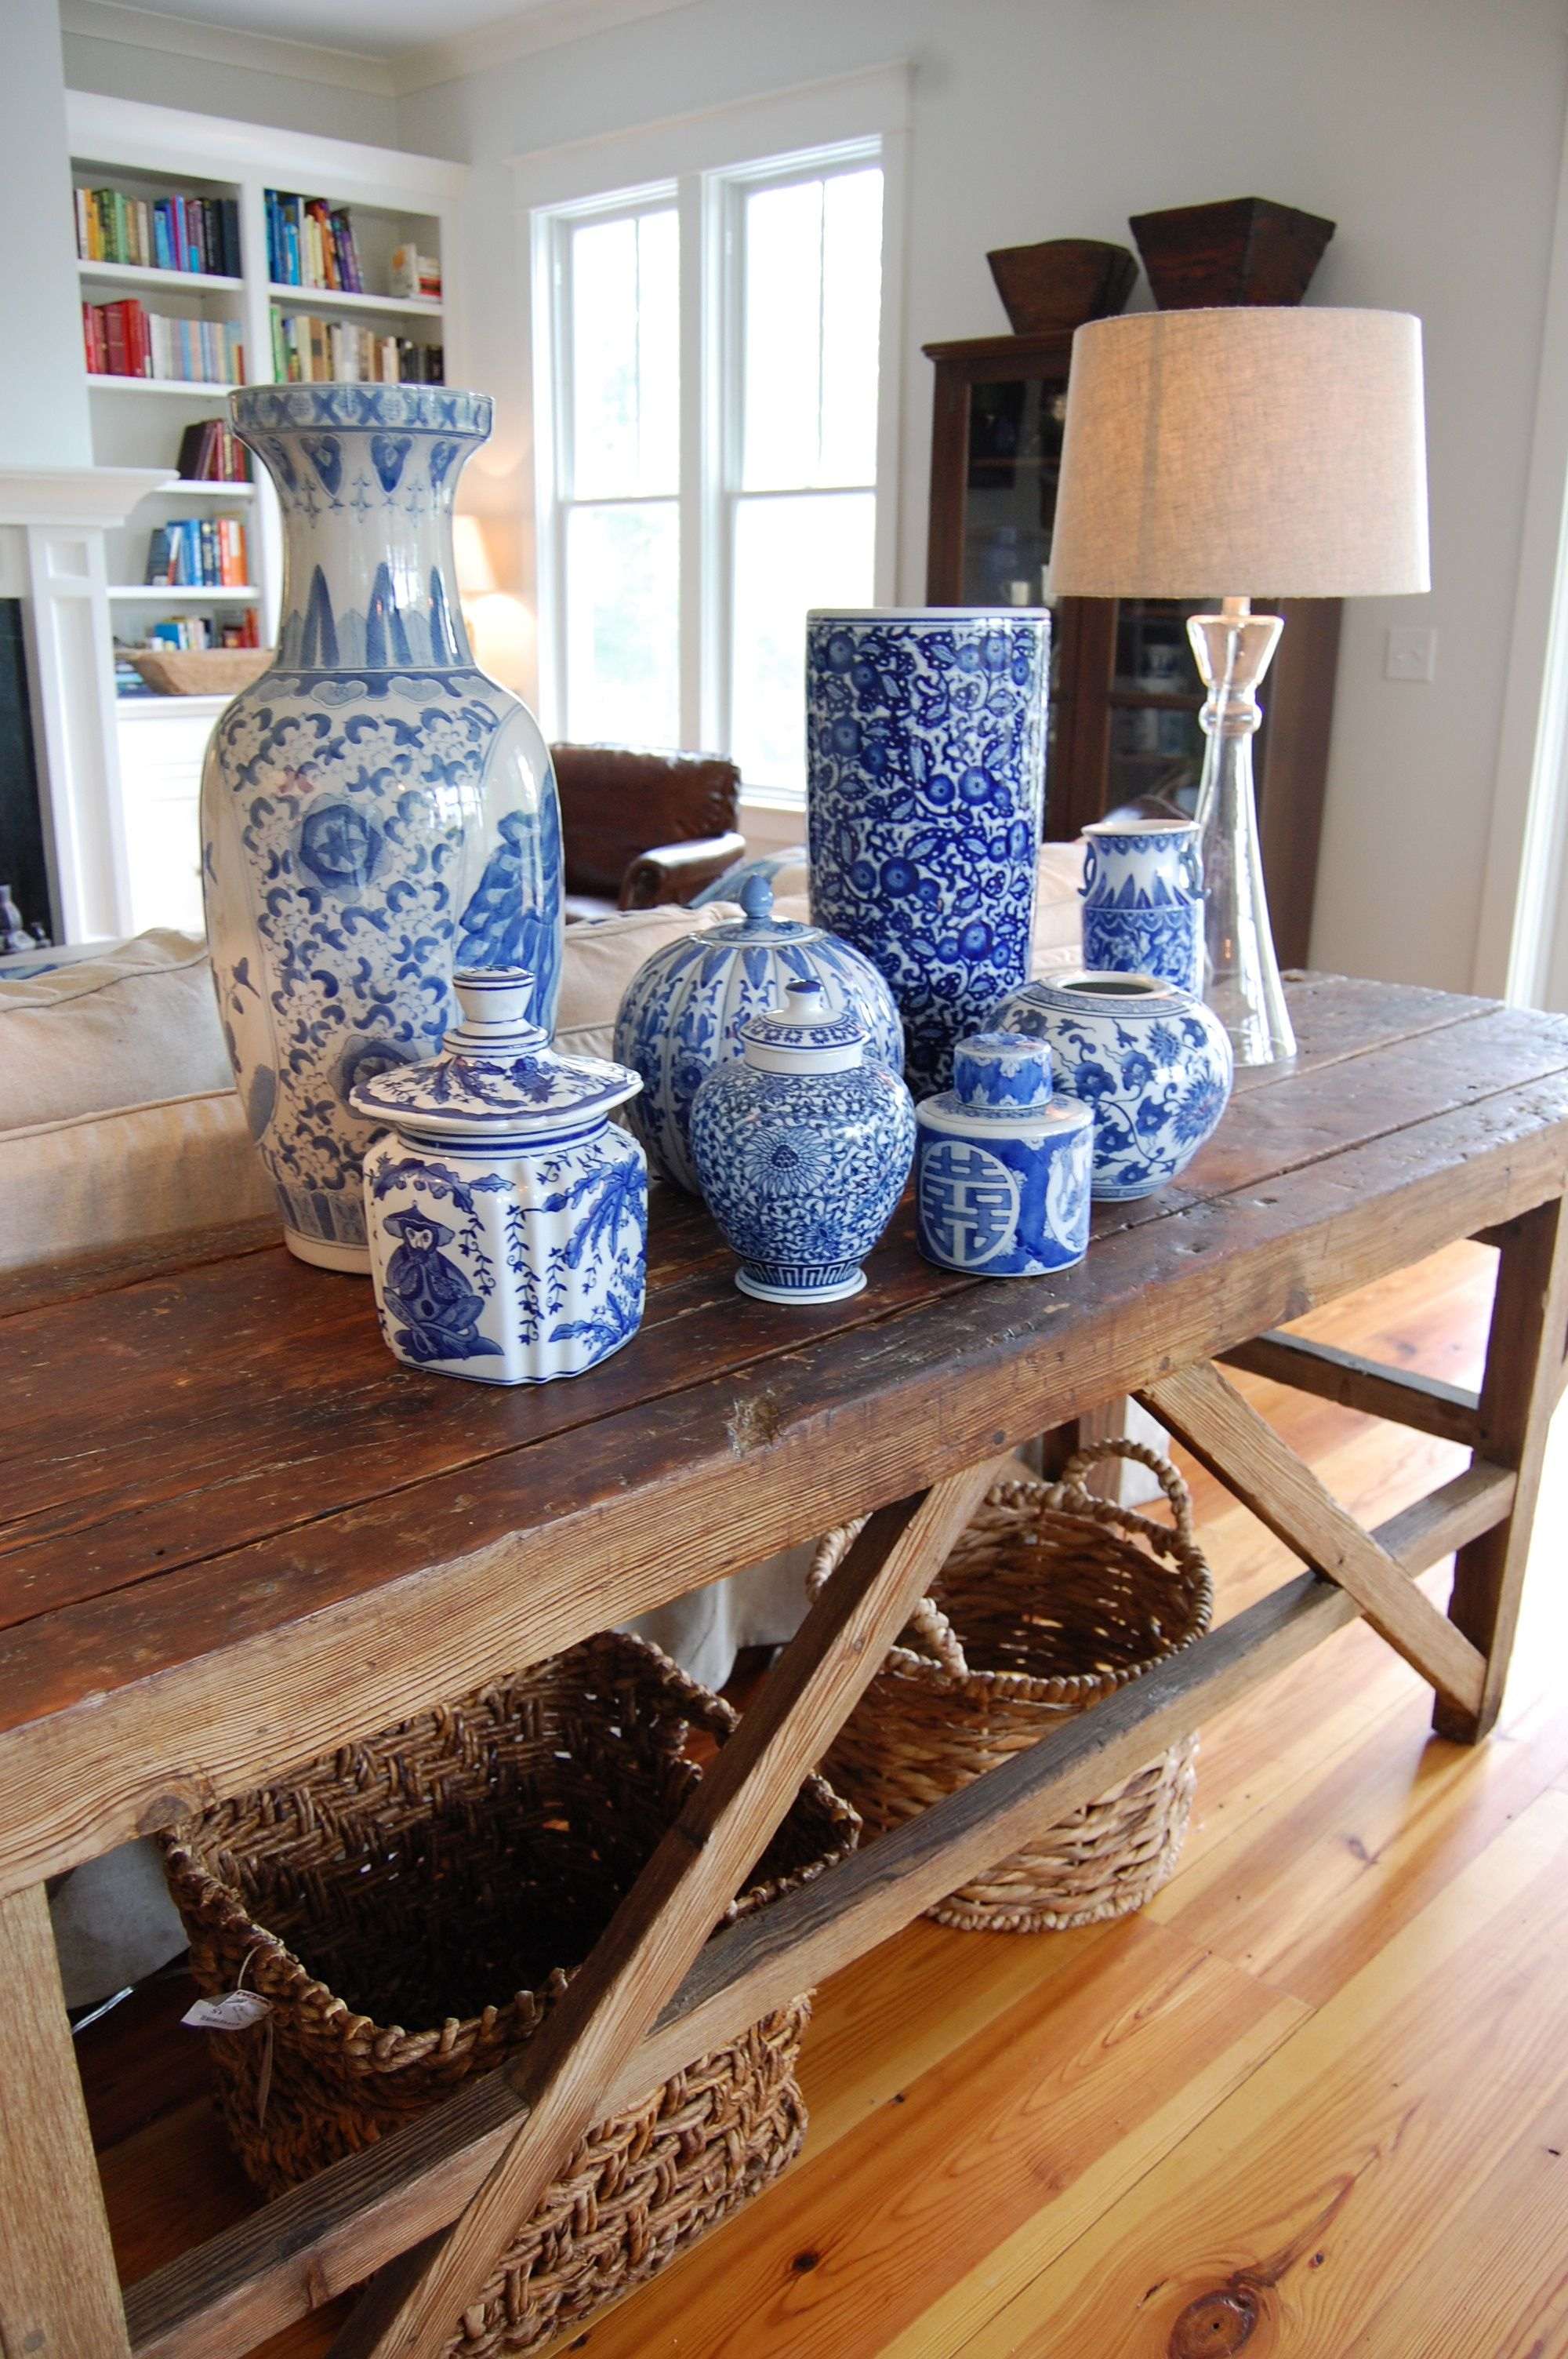 from the board ginger jars some antique mixed with vases from homegoods add a pop of color to this farmhouse table in a coastal home